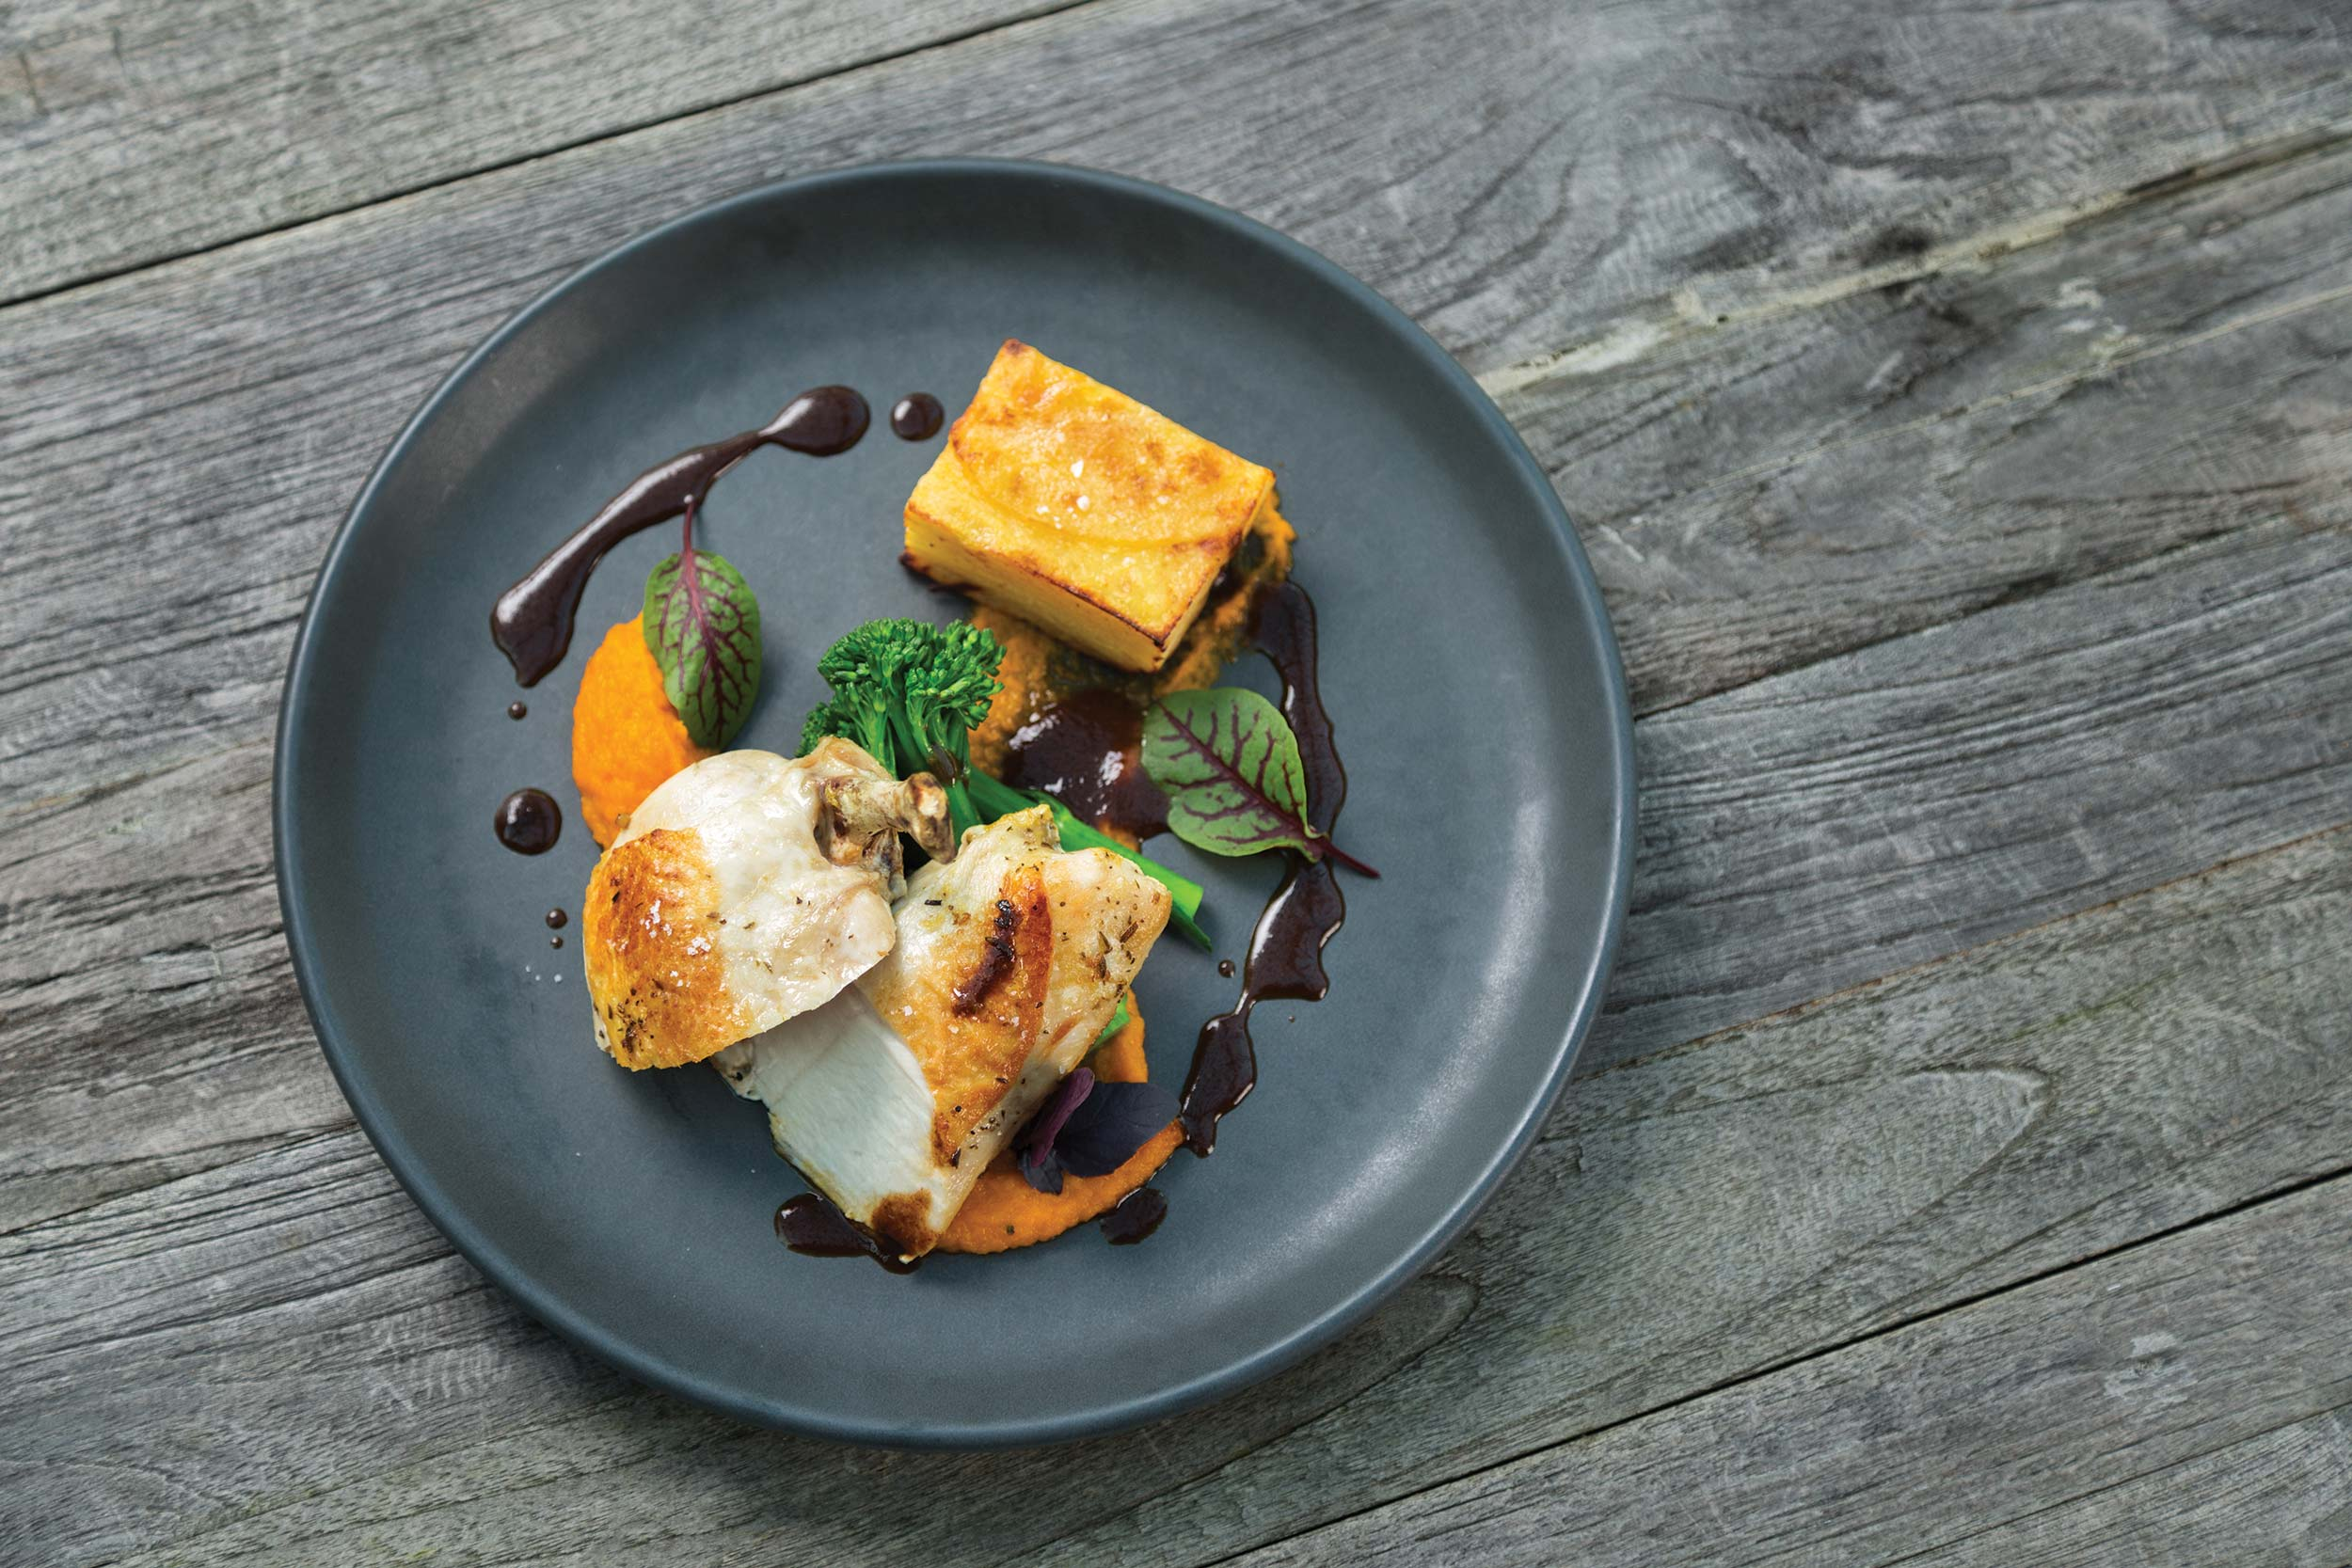 A beautiful chicken dish for your event, using the freshest local produce.